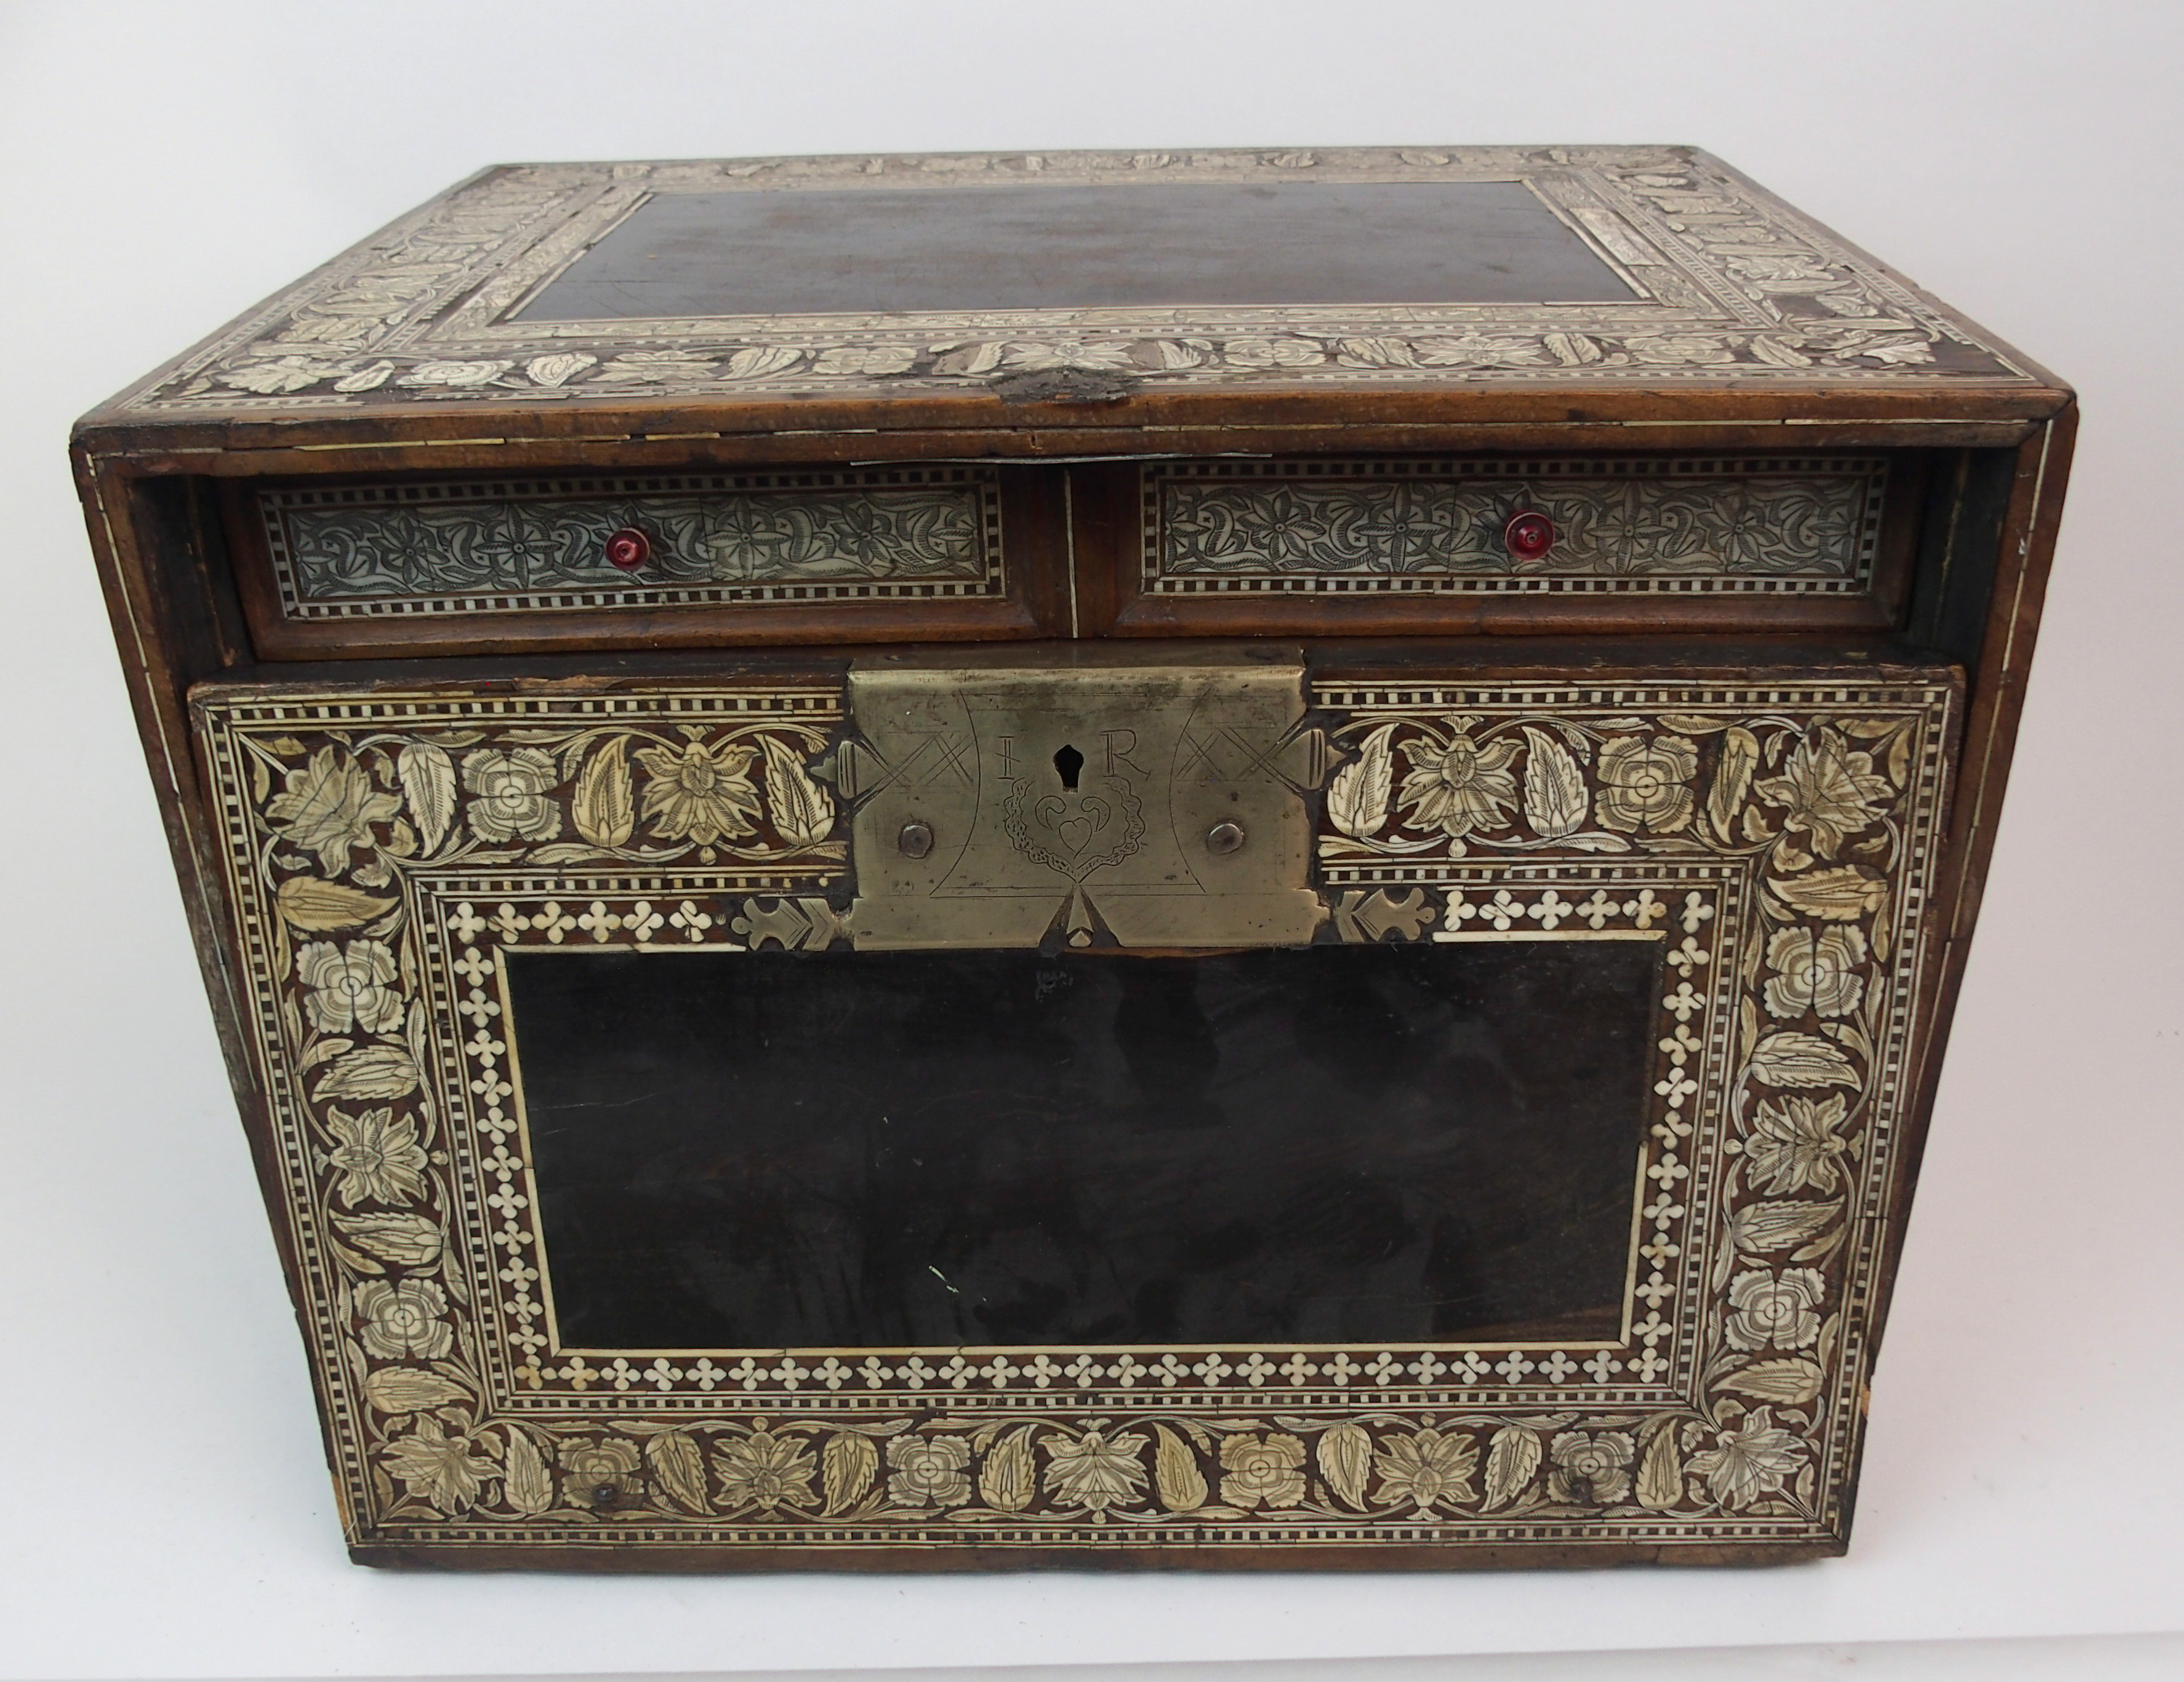 Lot 46 - A MUGHAL (INDO-PORTUGUESE) HARDWOOD AND IVORY INLAID COLLECTORS CABINET decorated with bands of